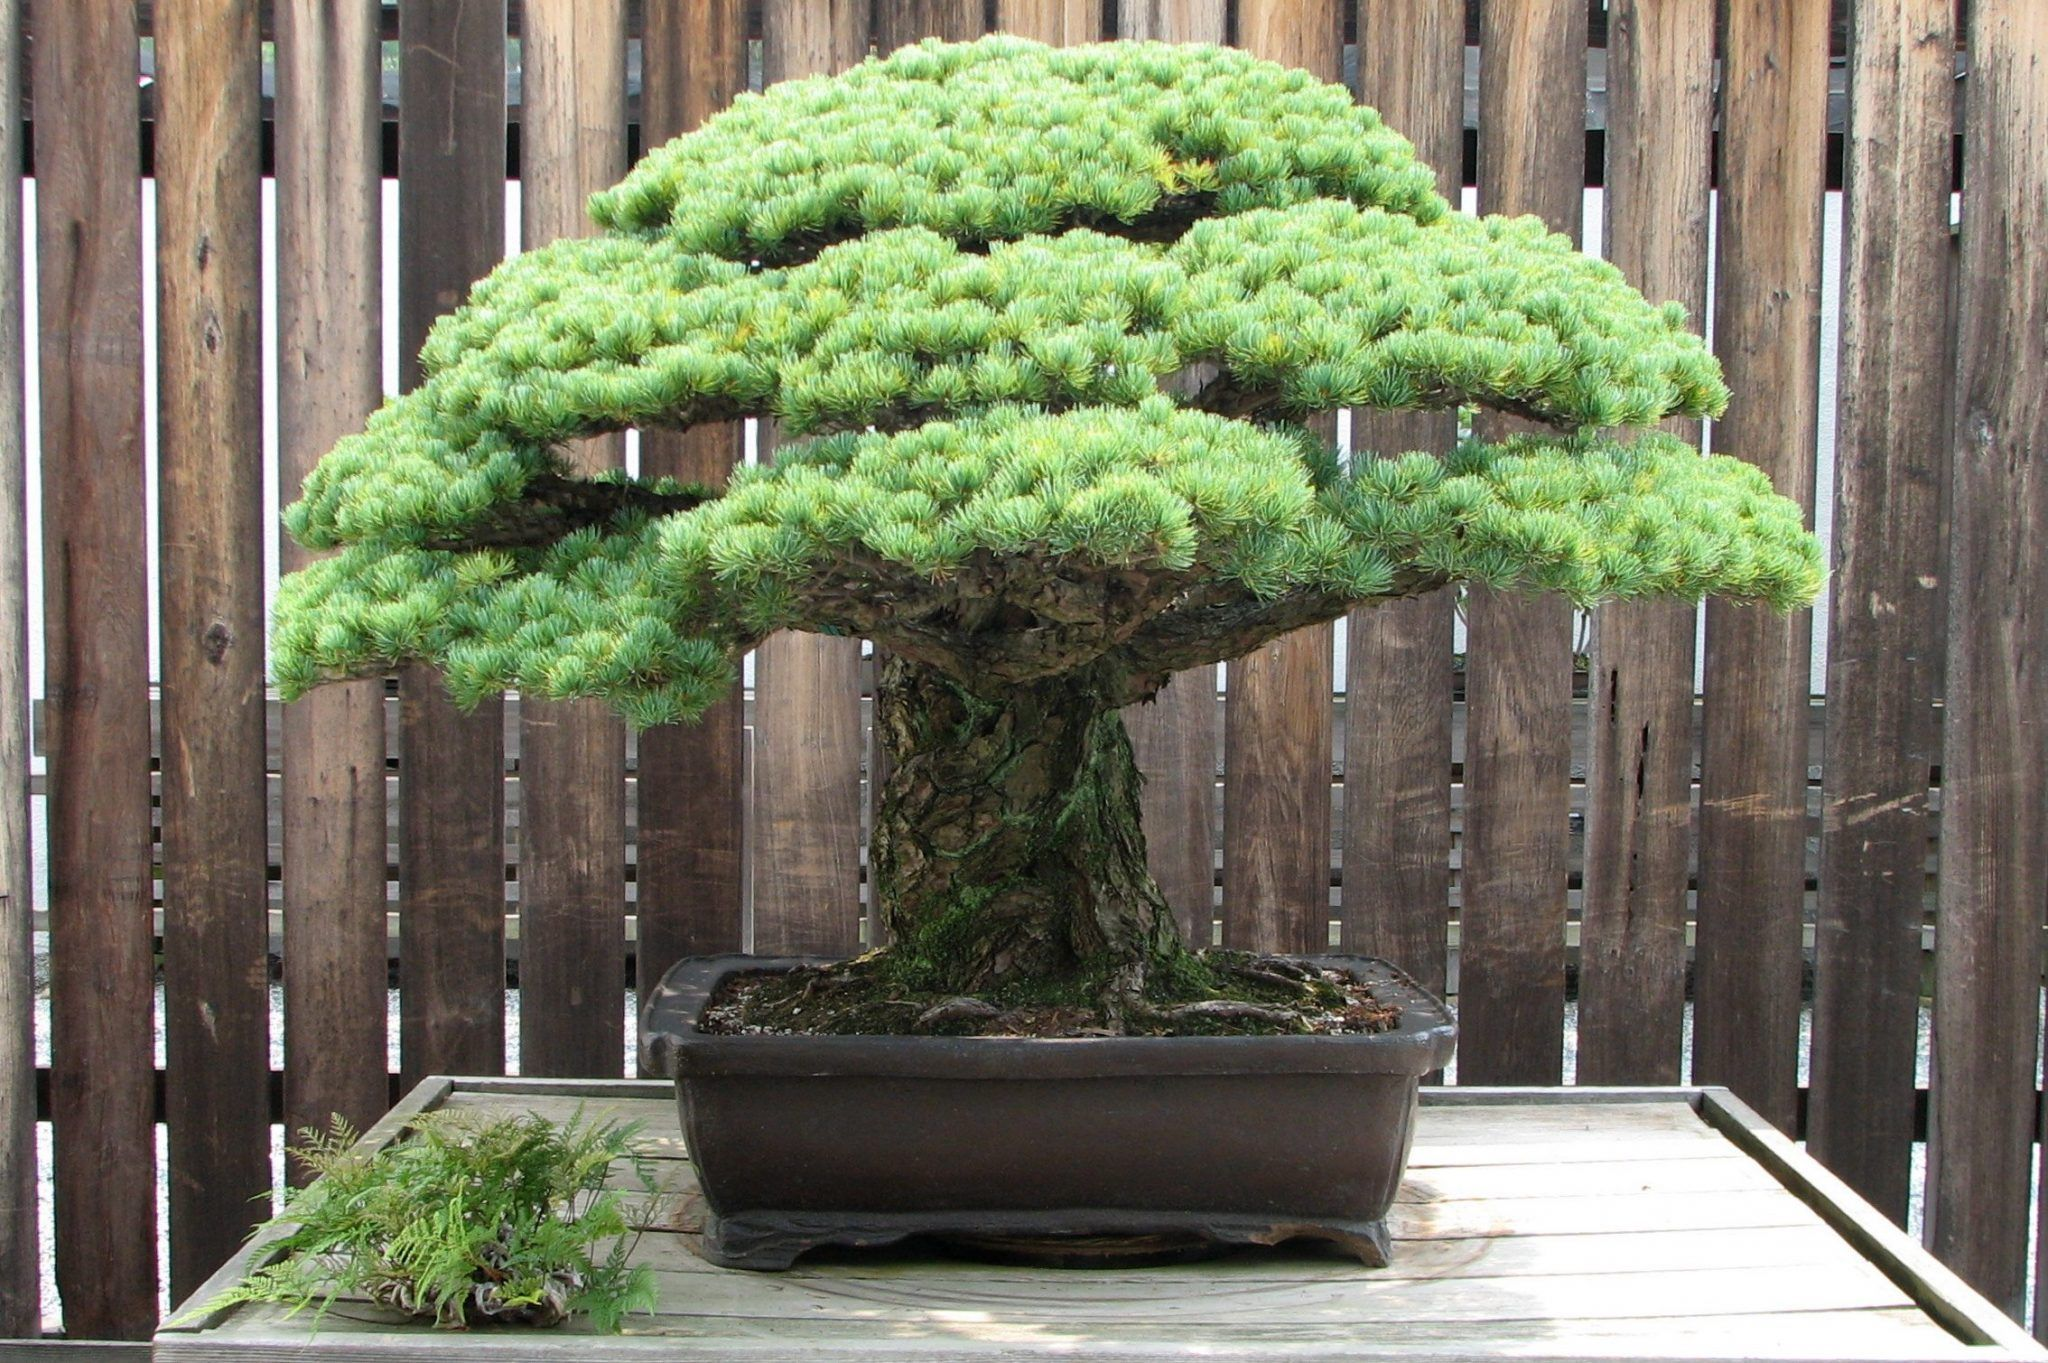 bonsai mas caro